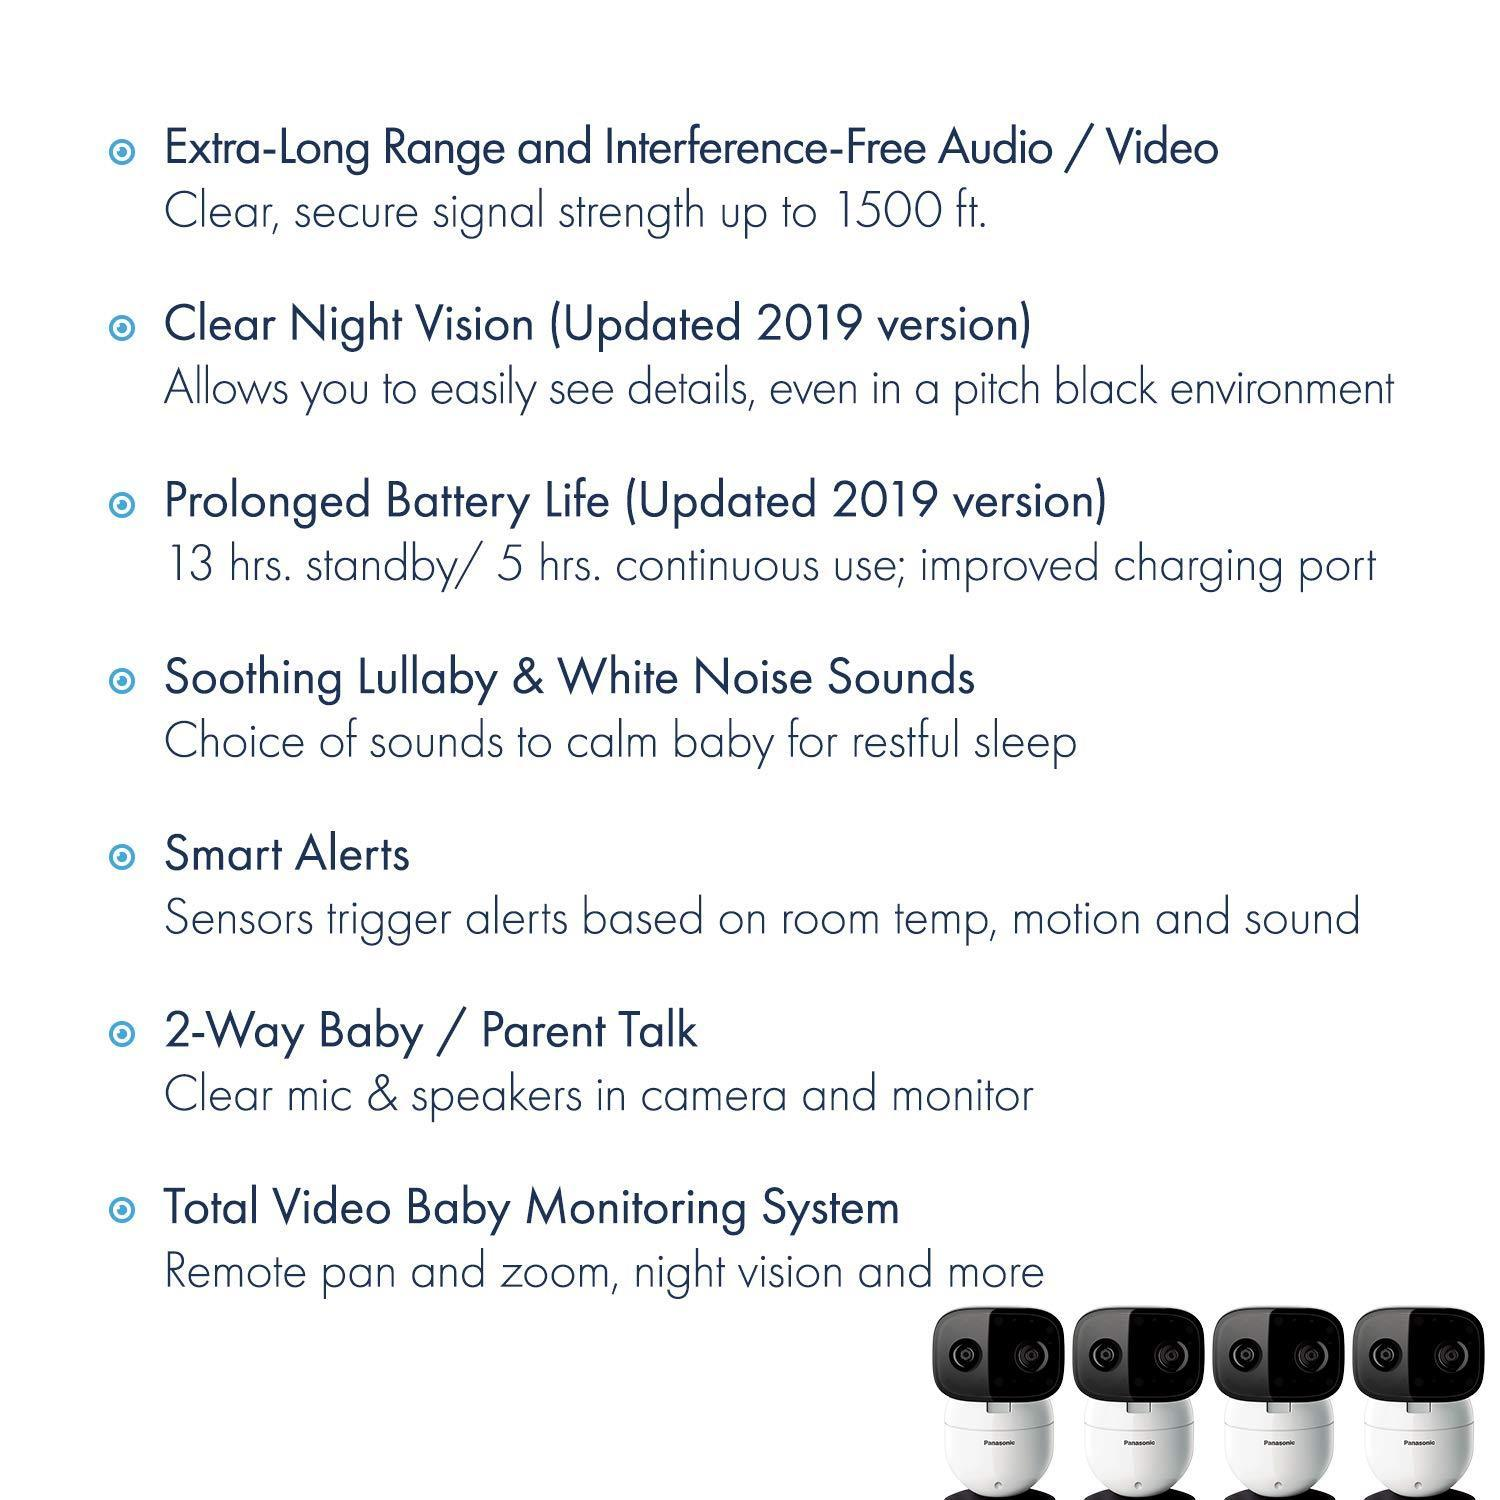 Video Baby Monitor/Camera with Remote Pan/Tilt/Zoom and Three Additional Add-On Cameras